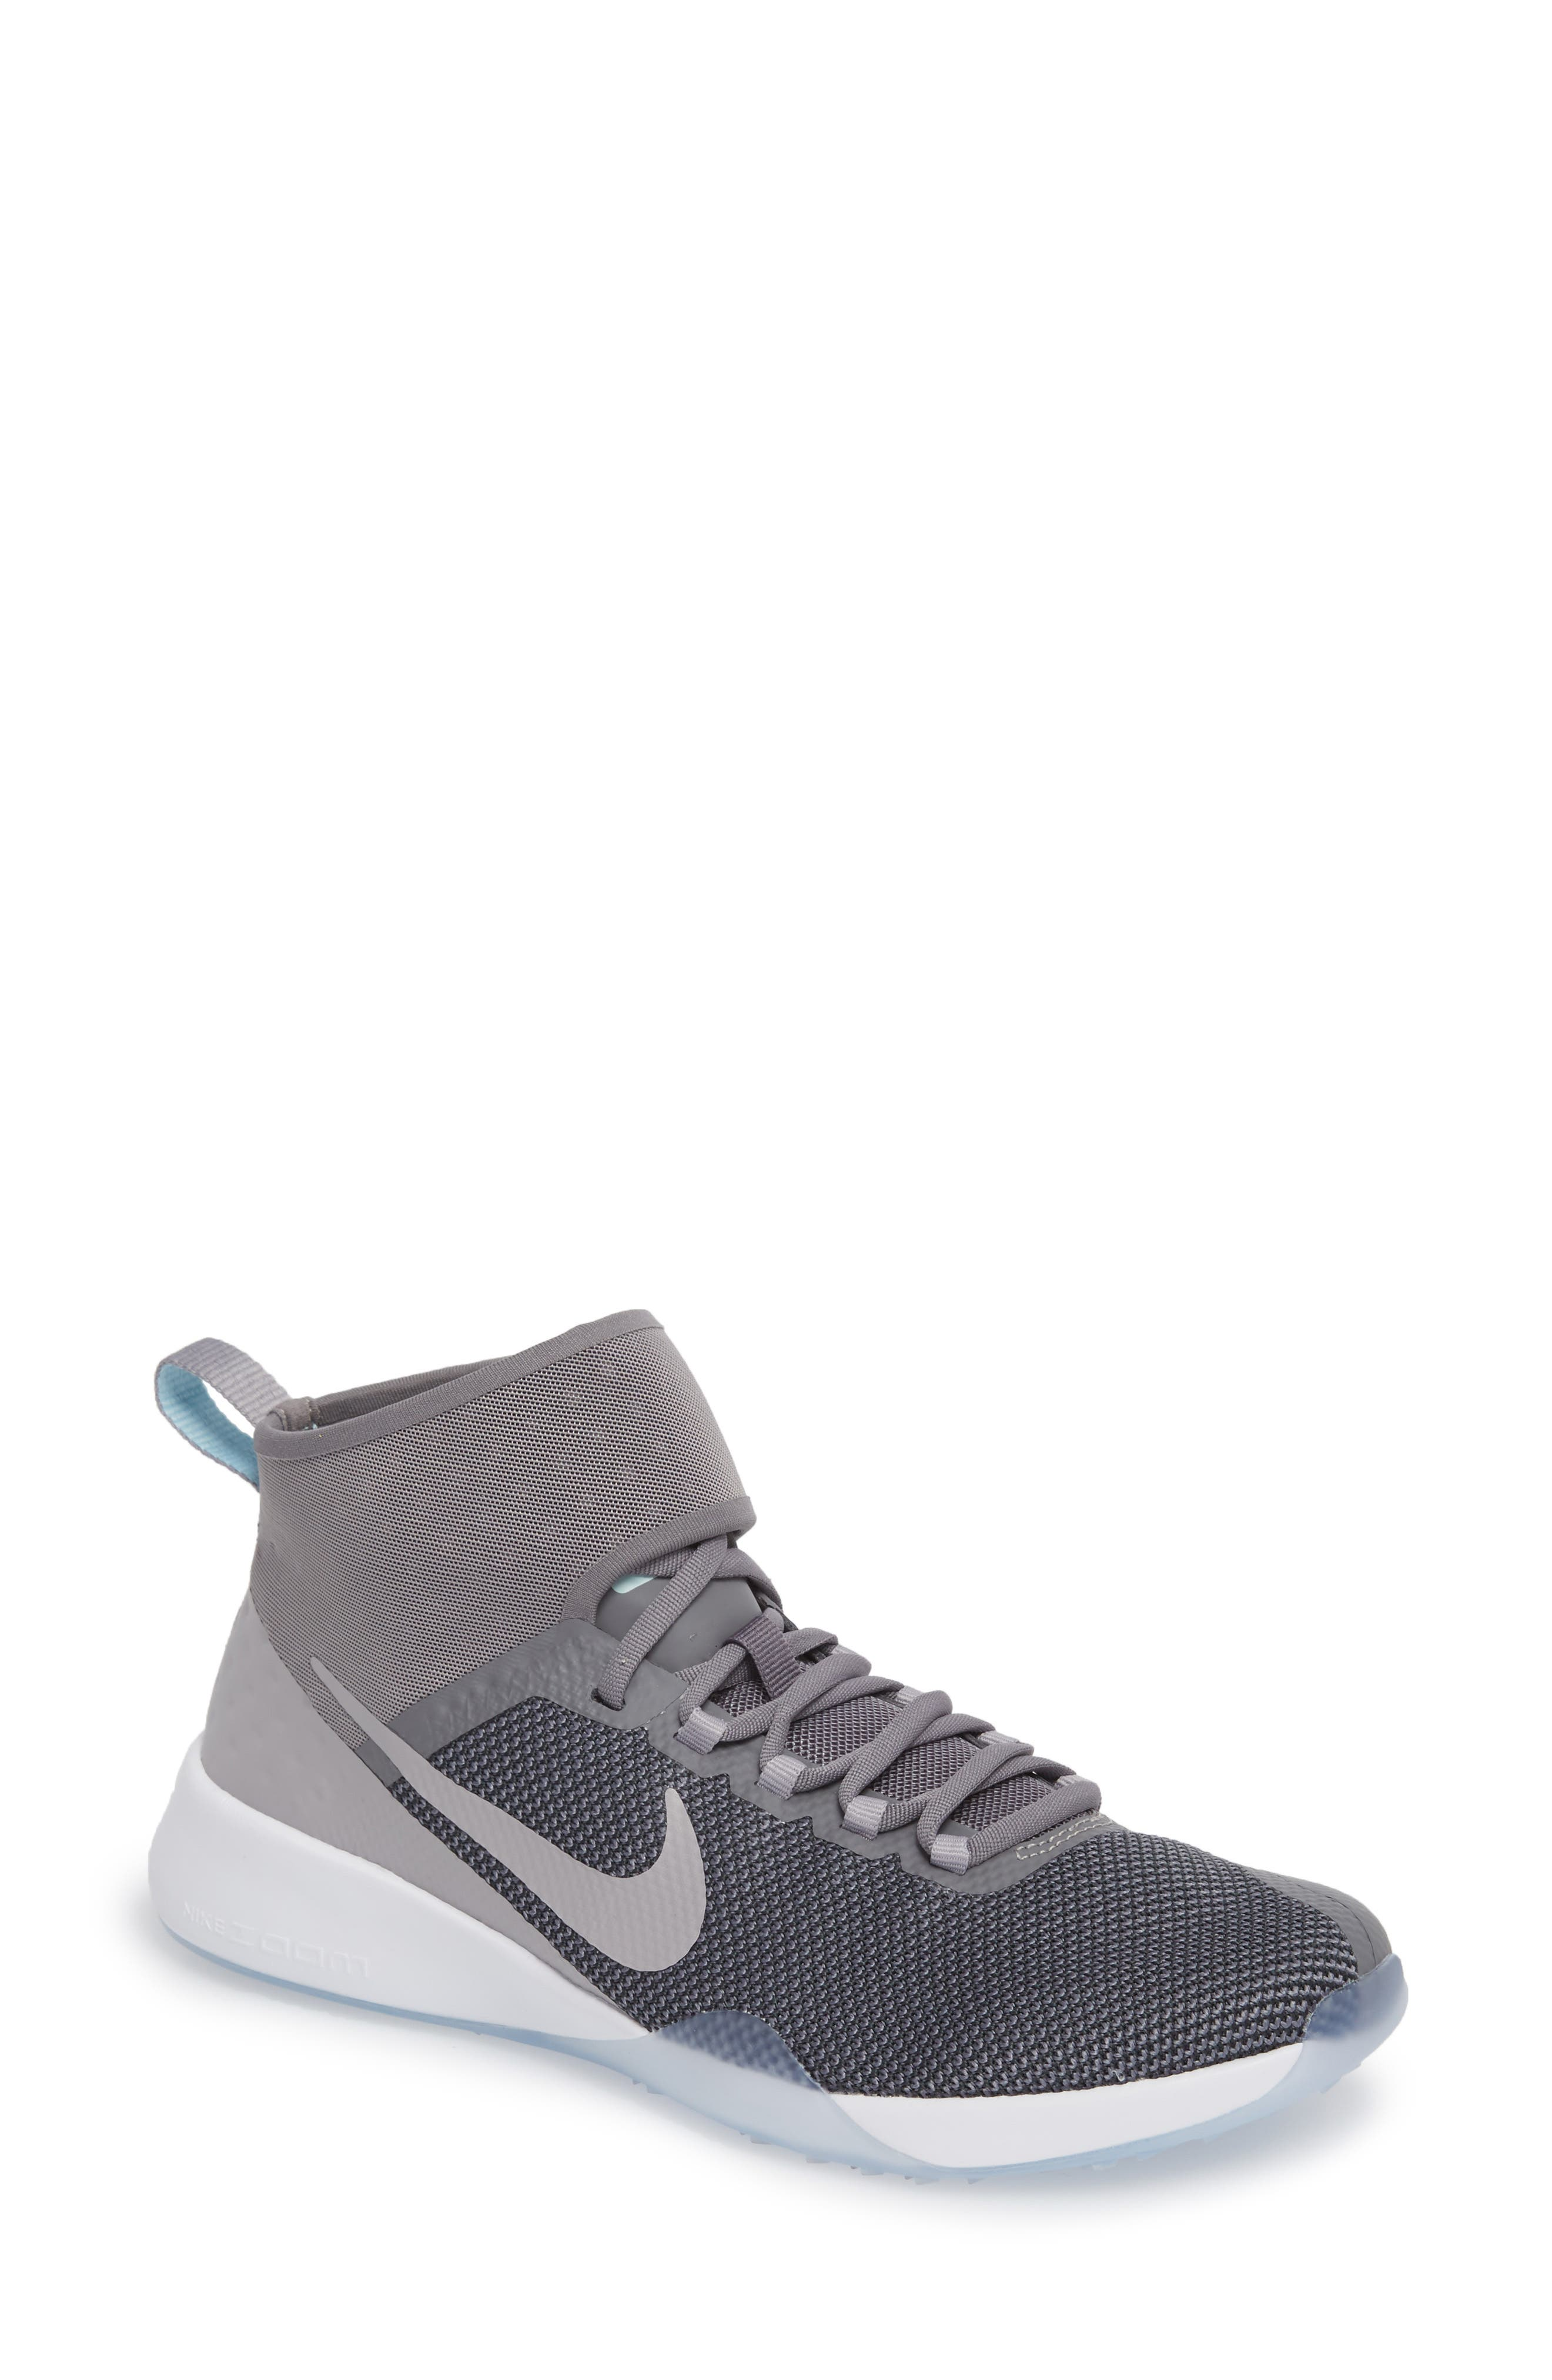 NikeLab Air Zoom Strong 2 Training Shoe,                         Main,                         color, Smoke/ Atmosphere Grey